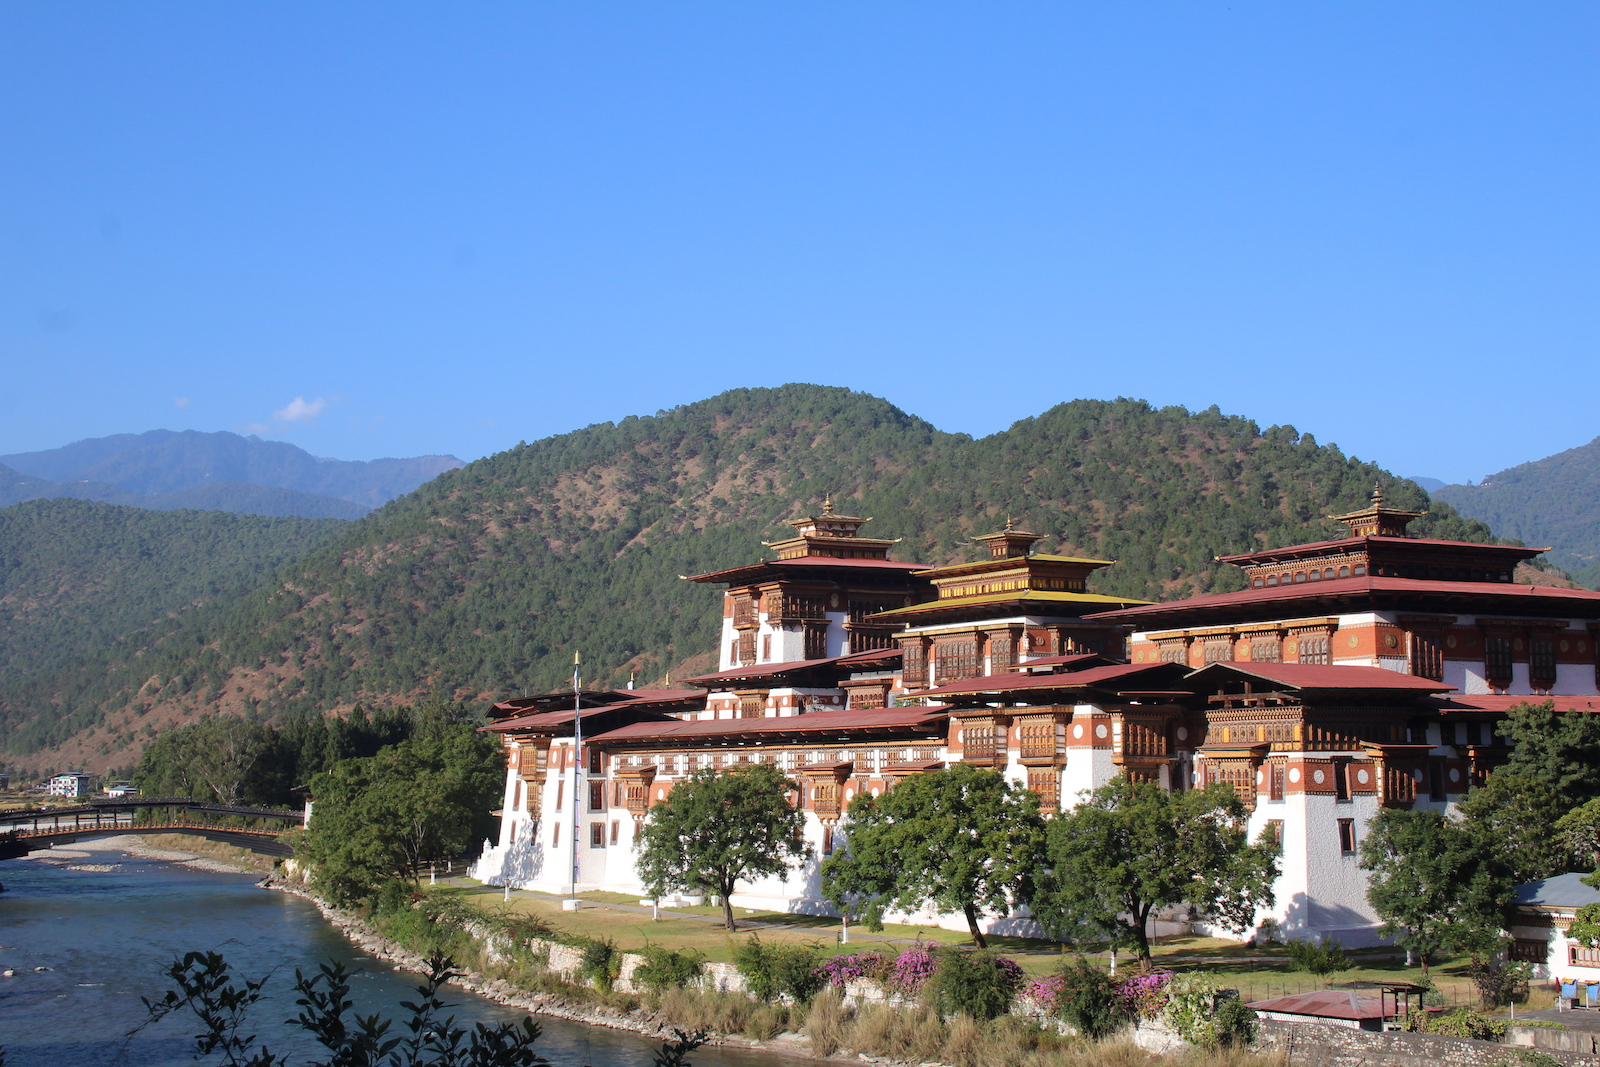 The Punakha Dzong in Punakha, Bhutan